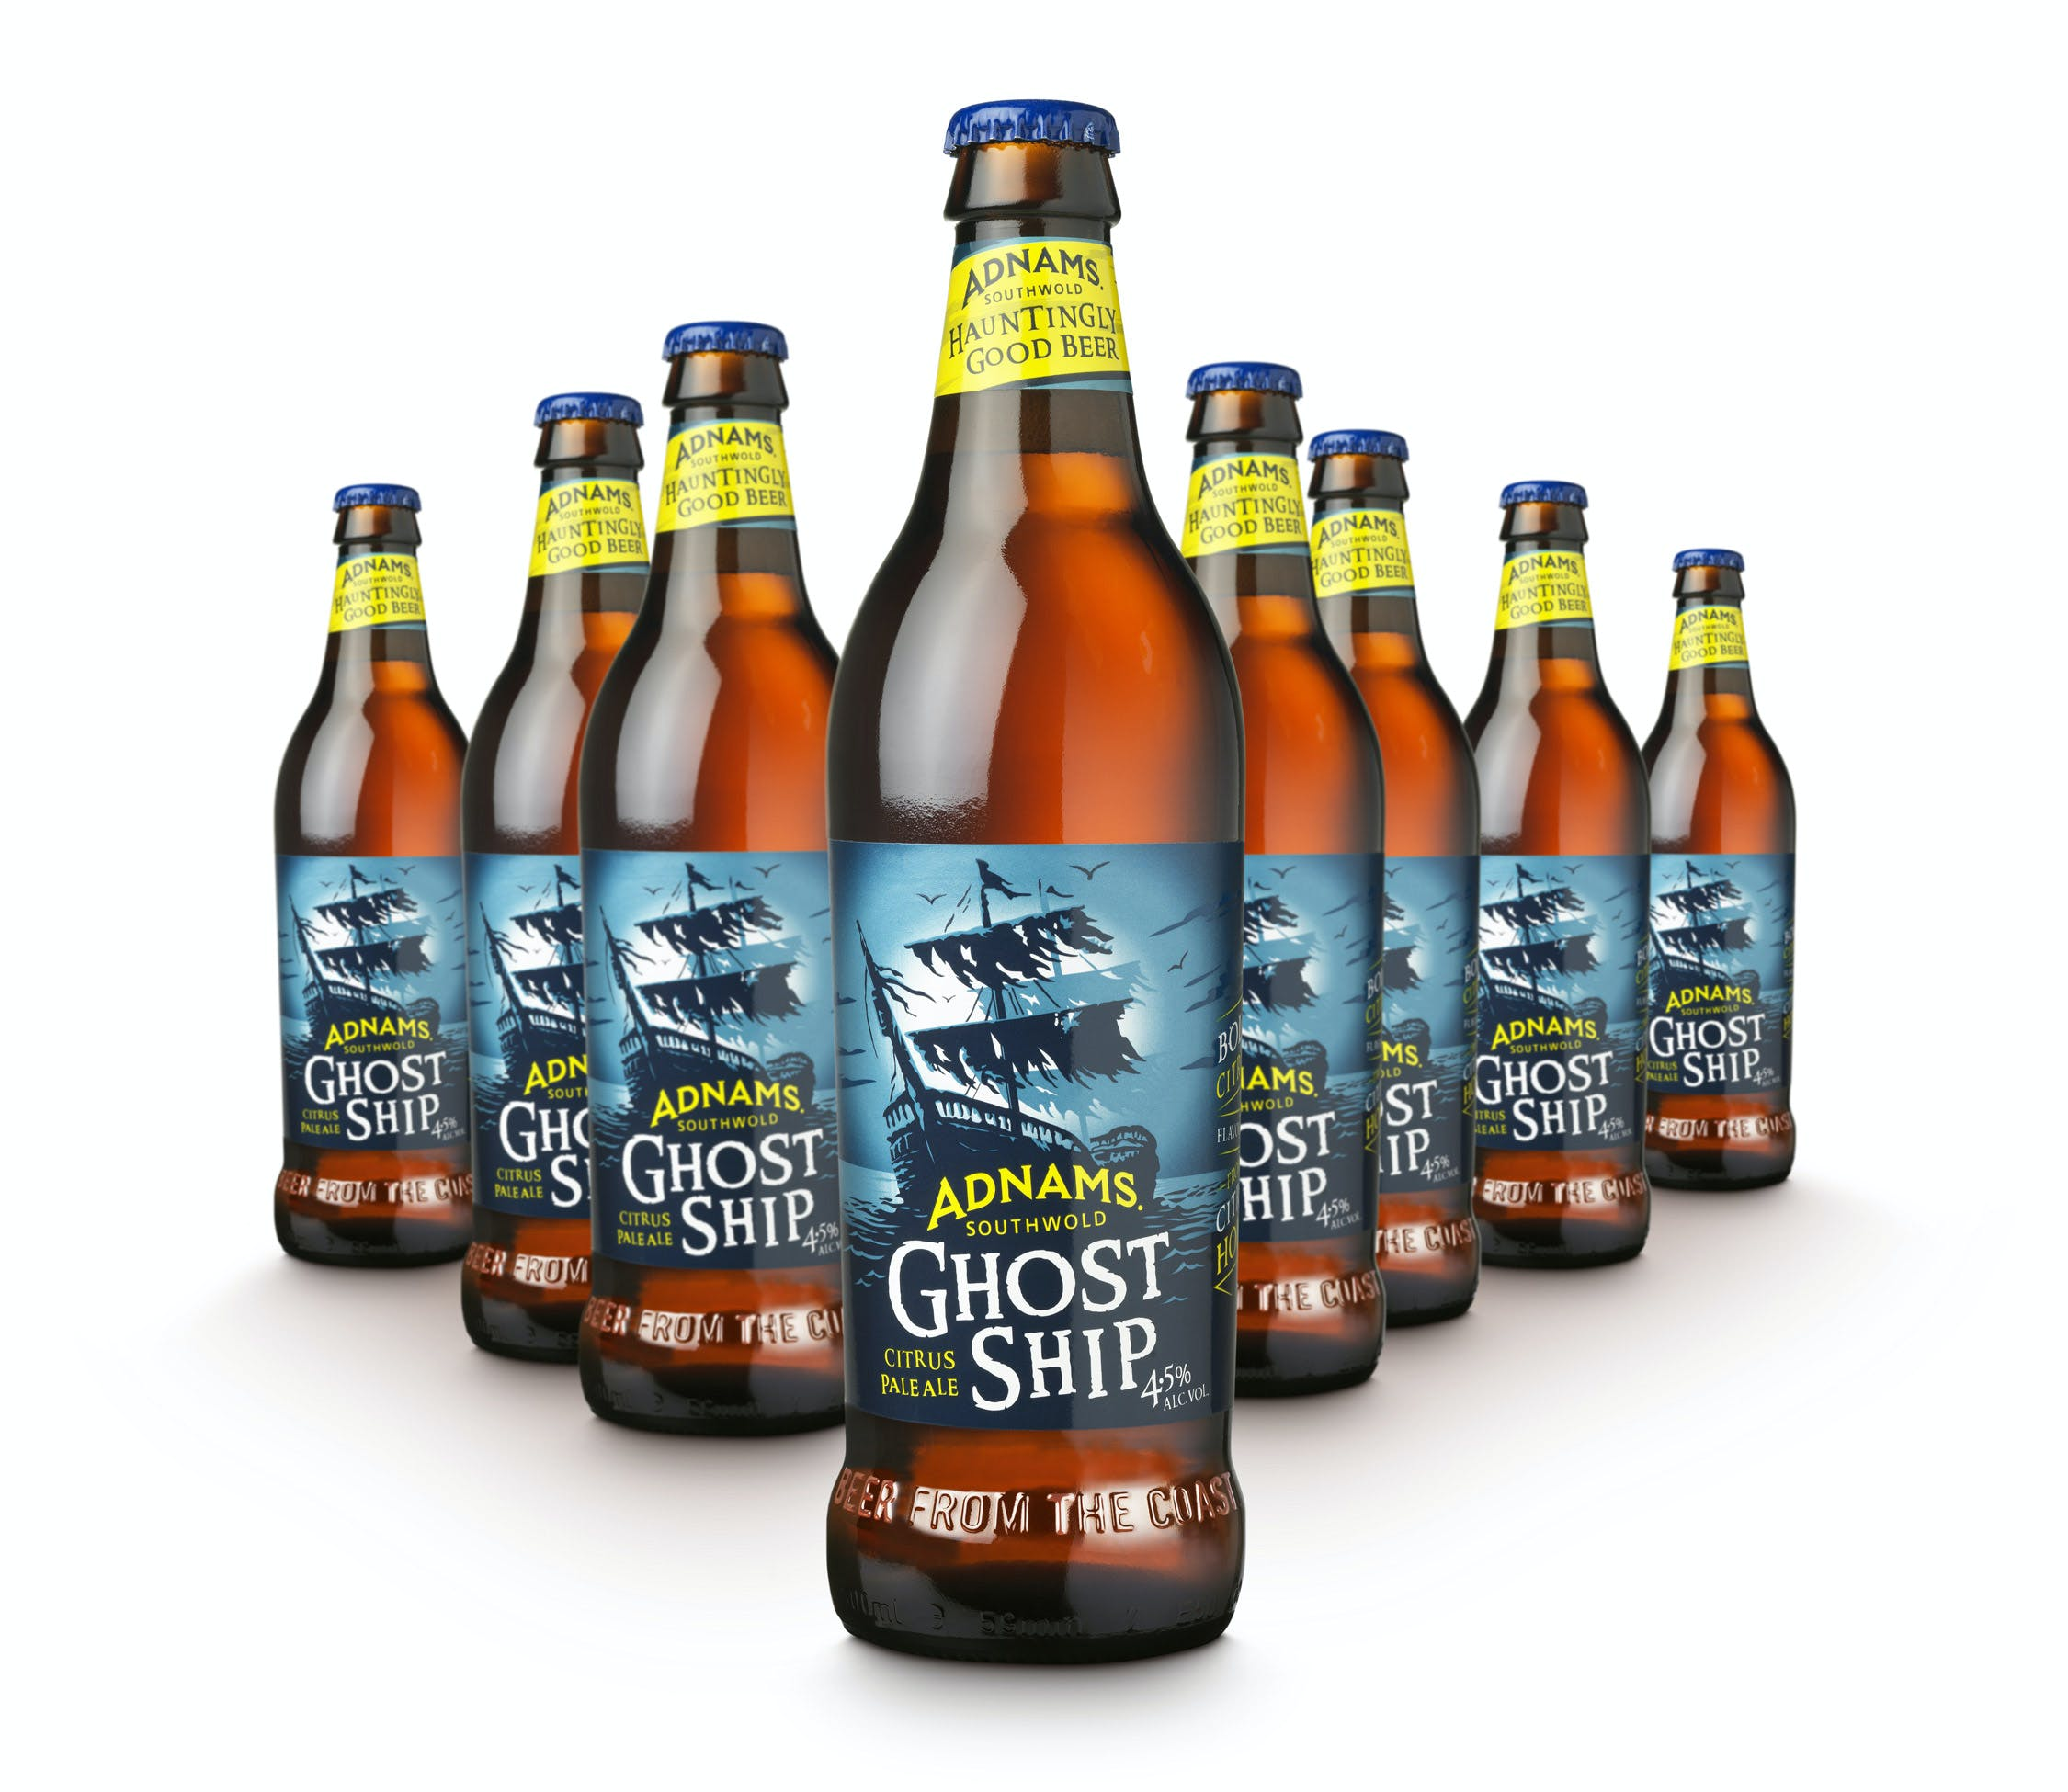 Stockists of Adnams Explorer